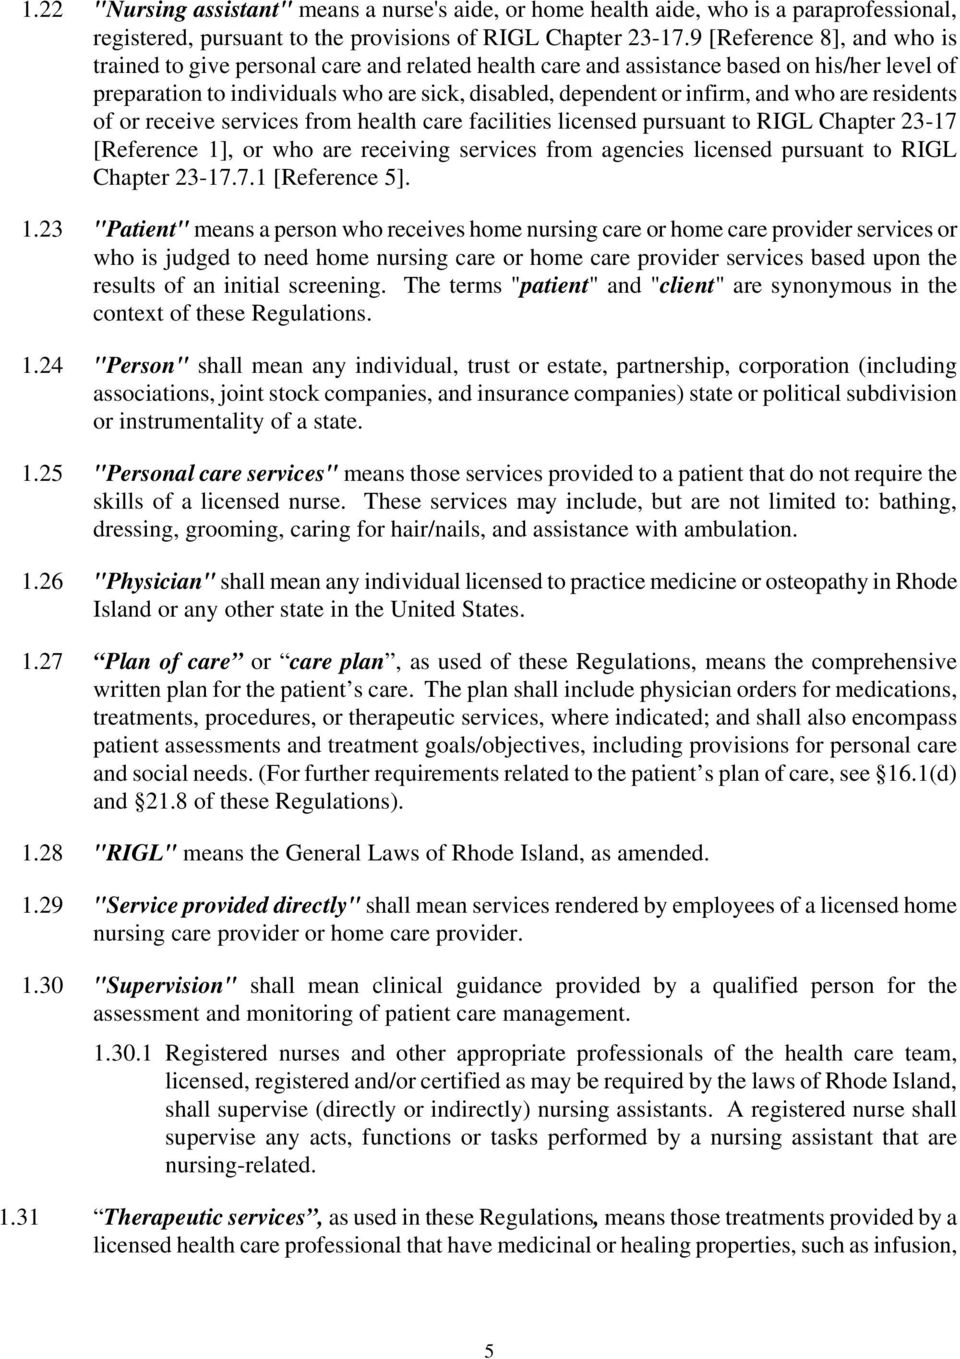 who are residents of or receive services from health care facilities licensed pursuant to RIGL Chapter 23-17 [Reference 1], or who are receiving services from agencies licensed pursuant to RIGL